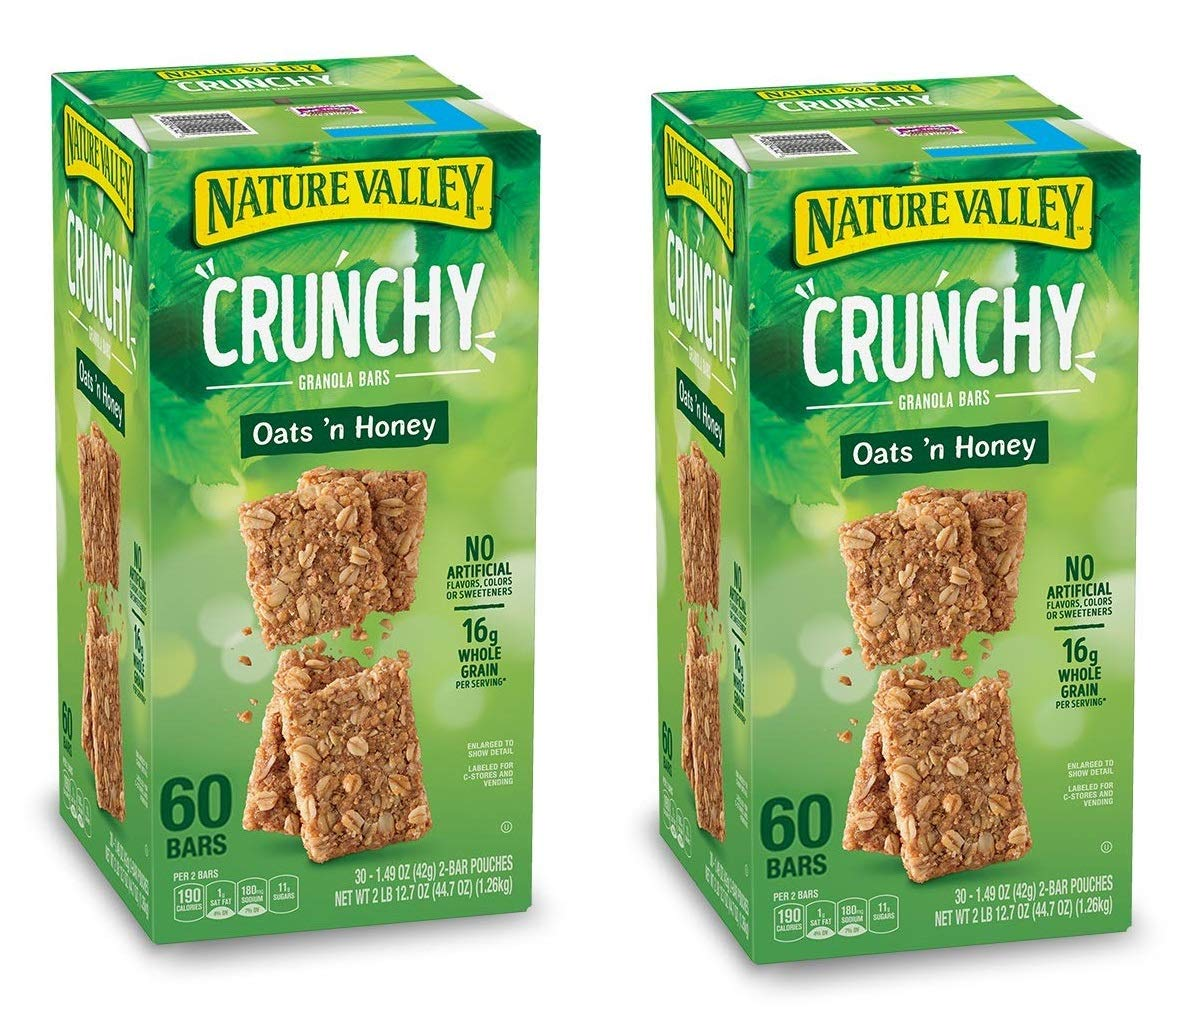 Natures Valley granola bars, Crunchy Oats N Honey, 60 Bars (2 Boxes) by Nature Valley